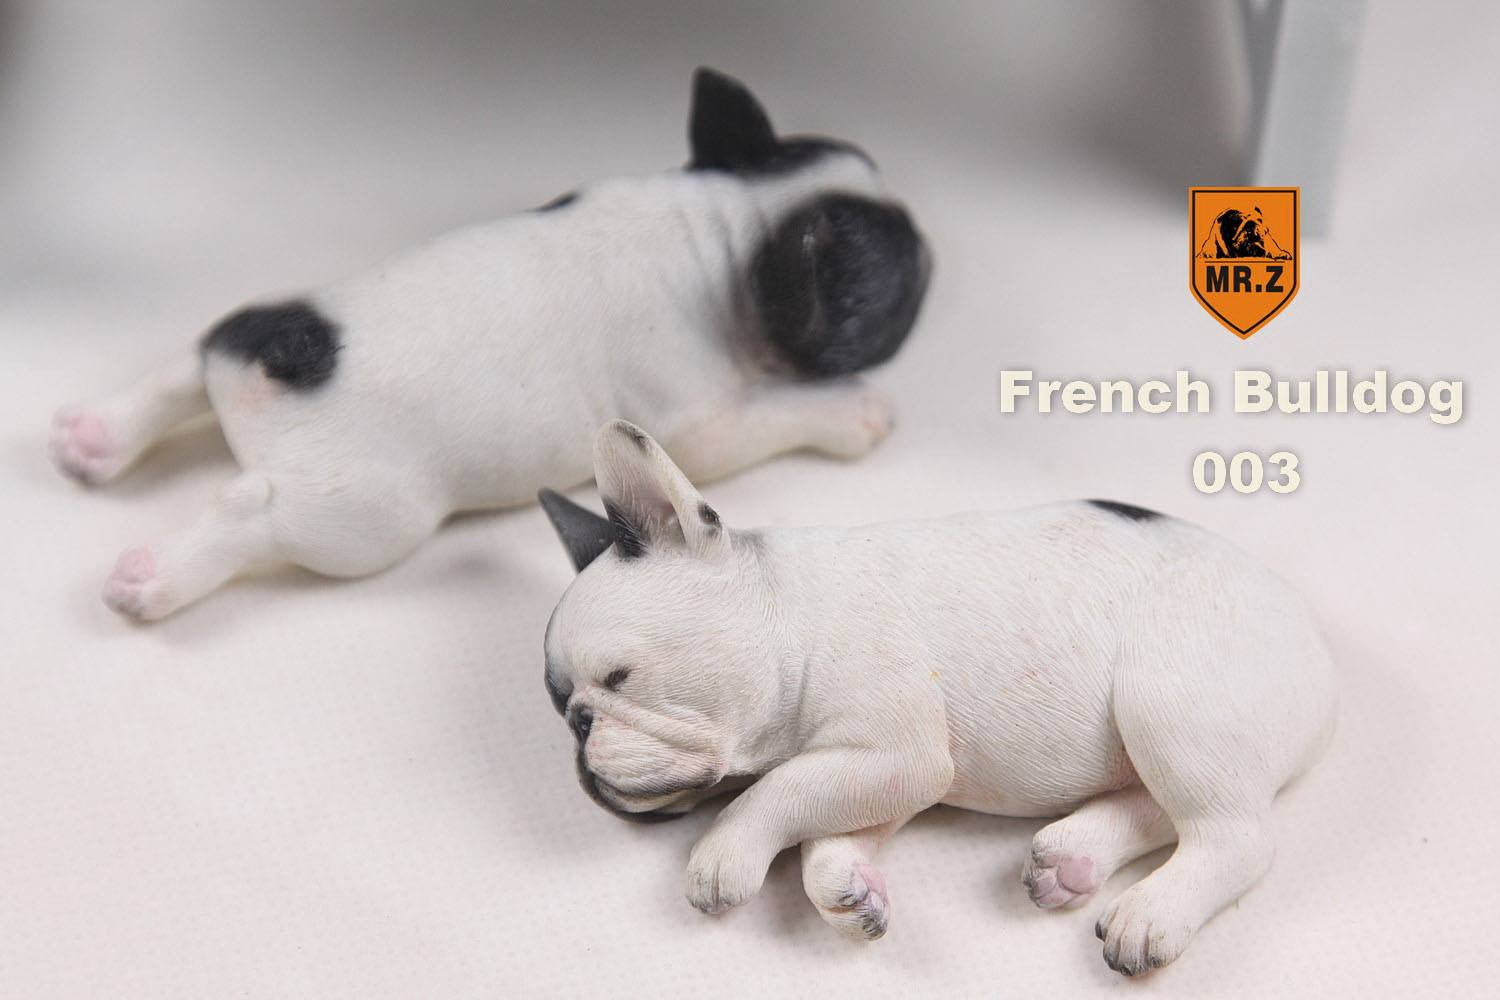 MR.Z - Real Animal Series No.9 - 1/6th Scale French Bulldog (Sleep Mode) 001-005 - Marvelous Toys - 16